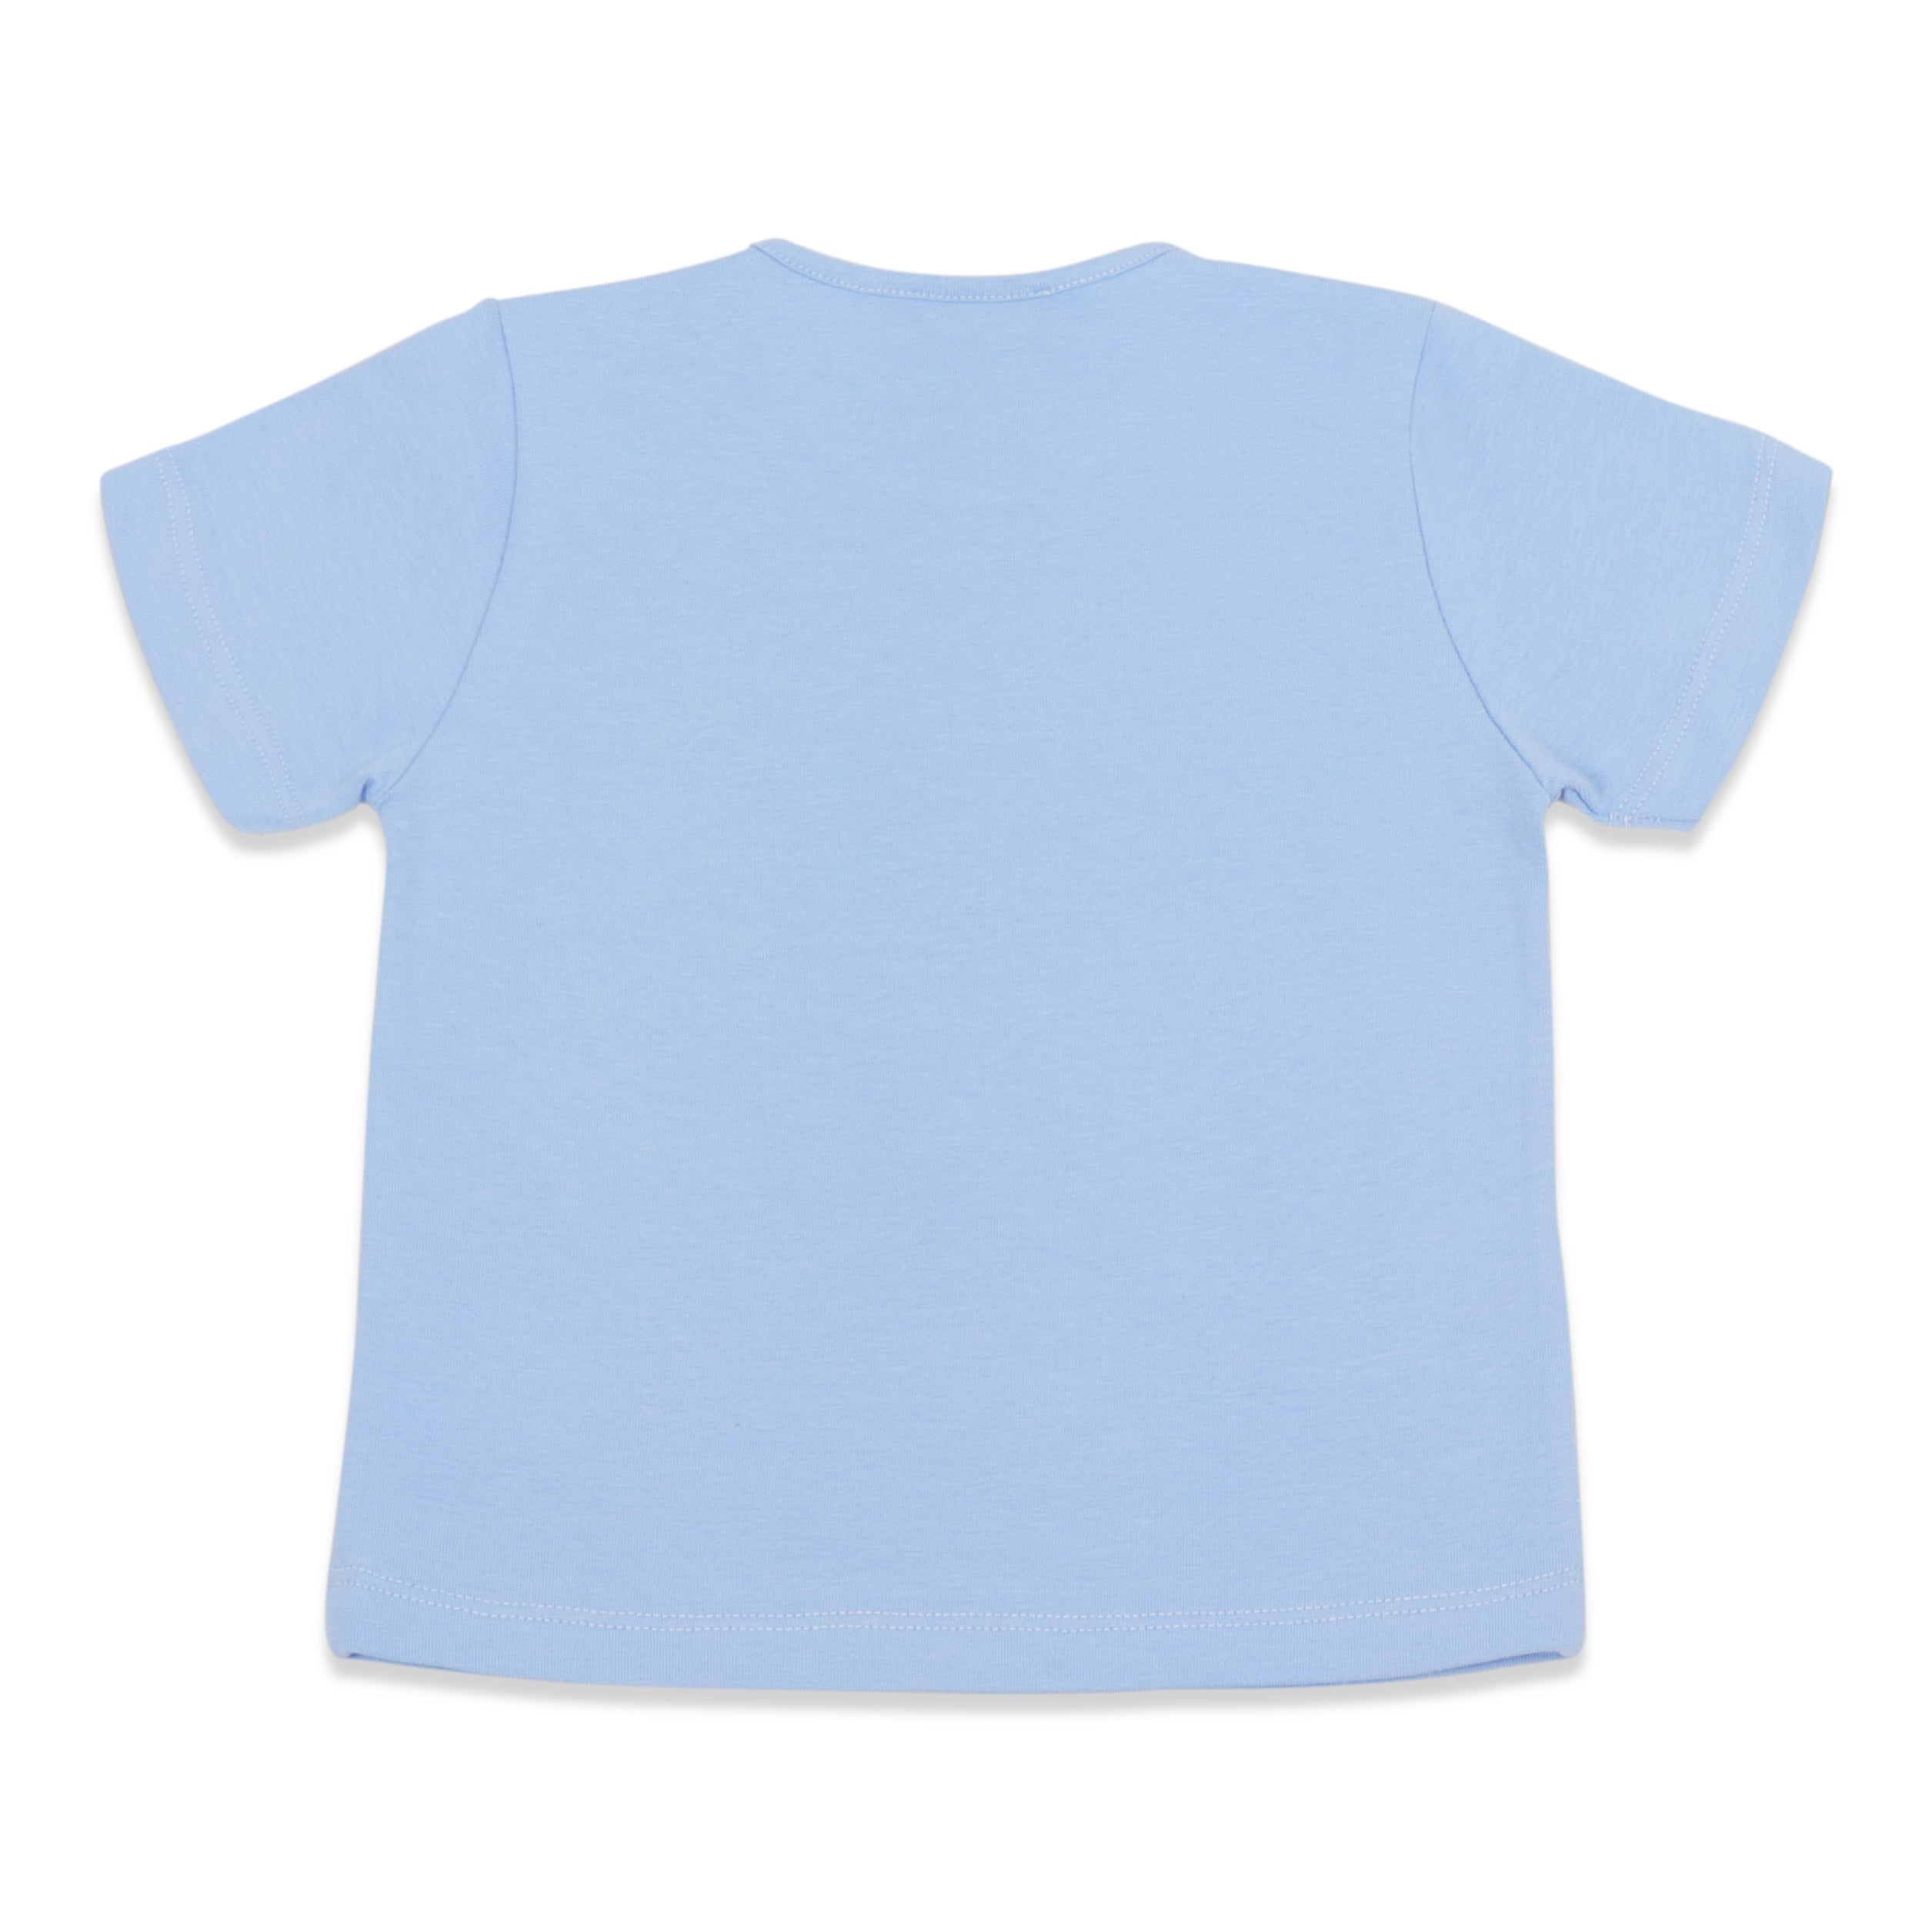 bi-elastic cotton jersey t-shirt